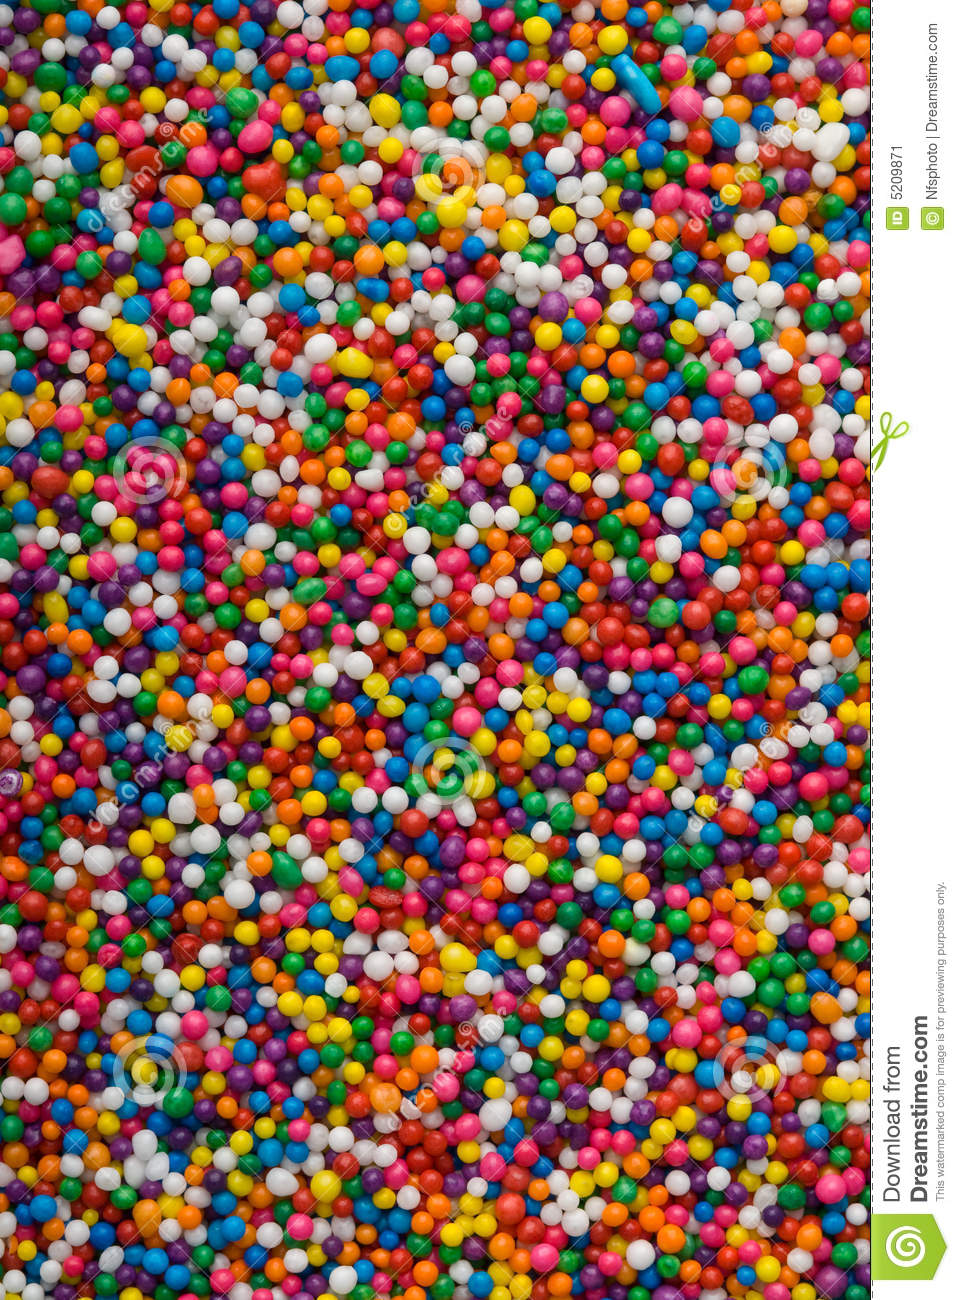 Colorful Sprinkles, Jimmies For Cake Decoration Stock Image